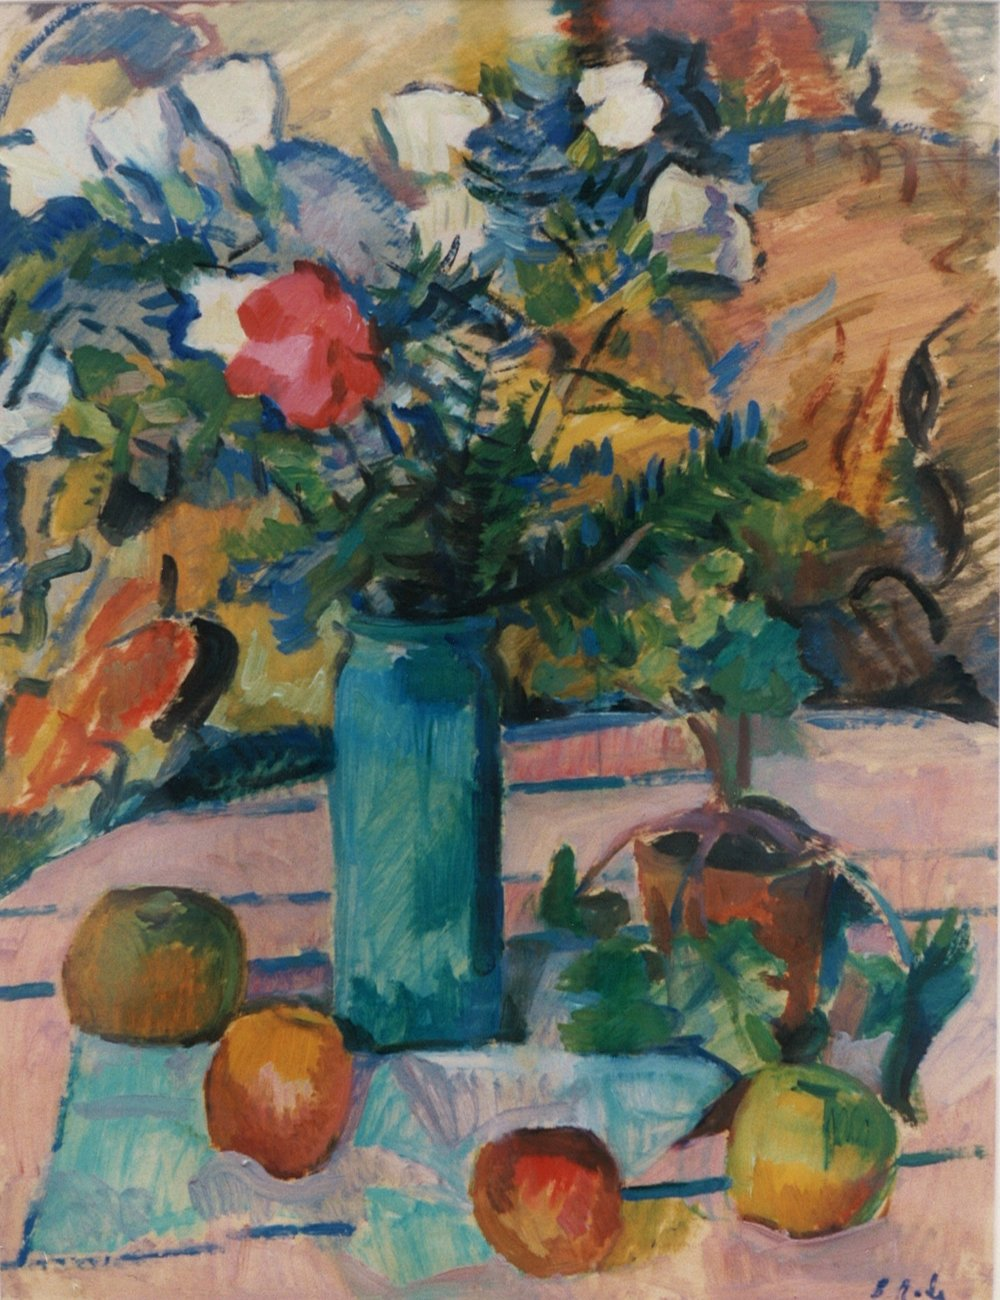 Still Life , Barbara (Zouzouline) Rodé, oil on canvas, 1983.03.01